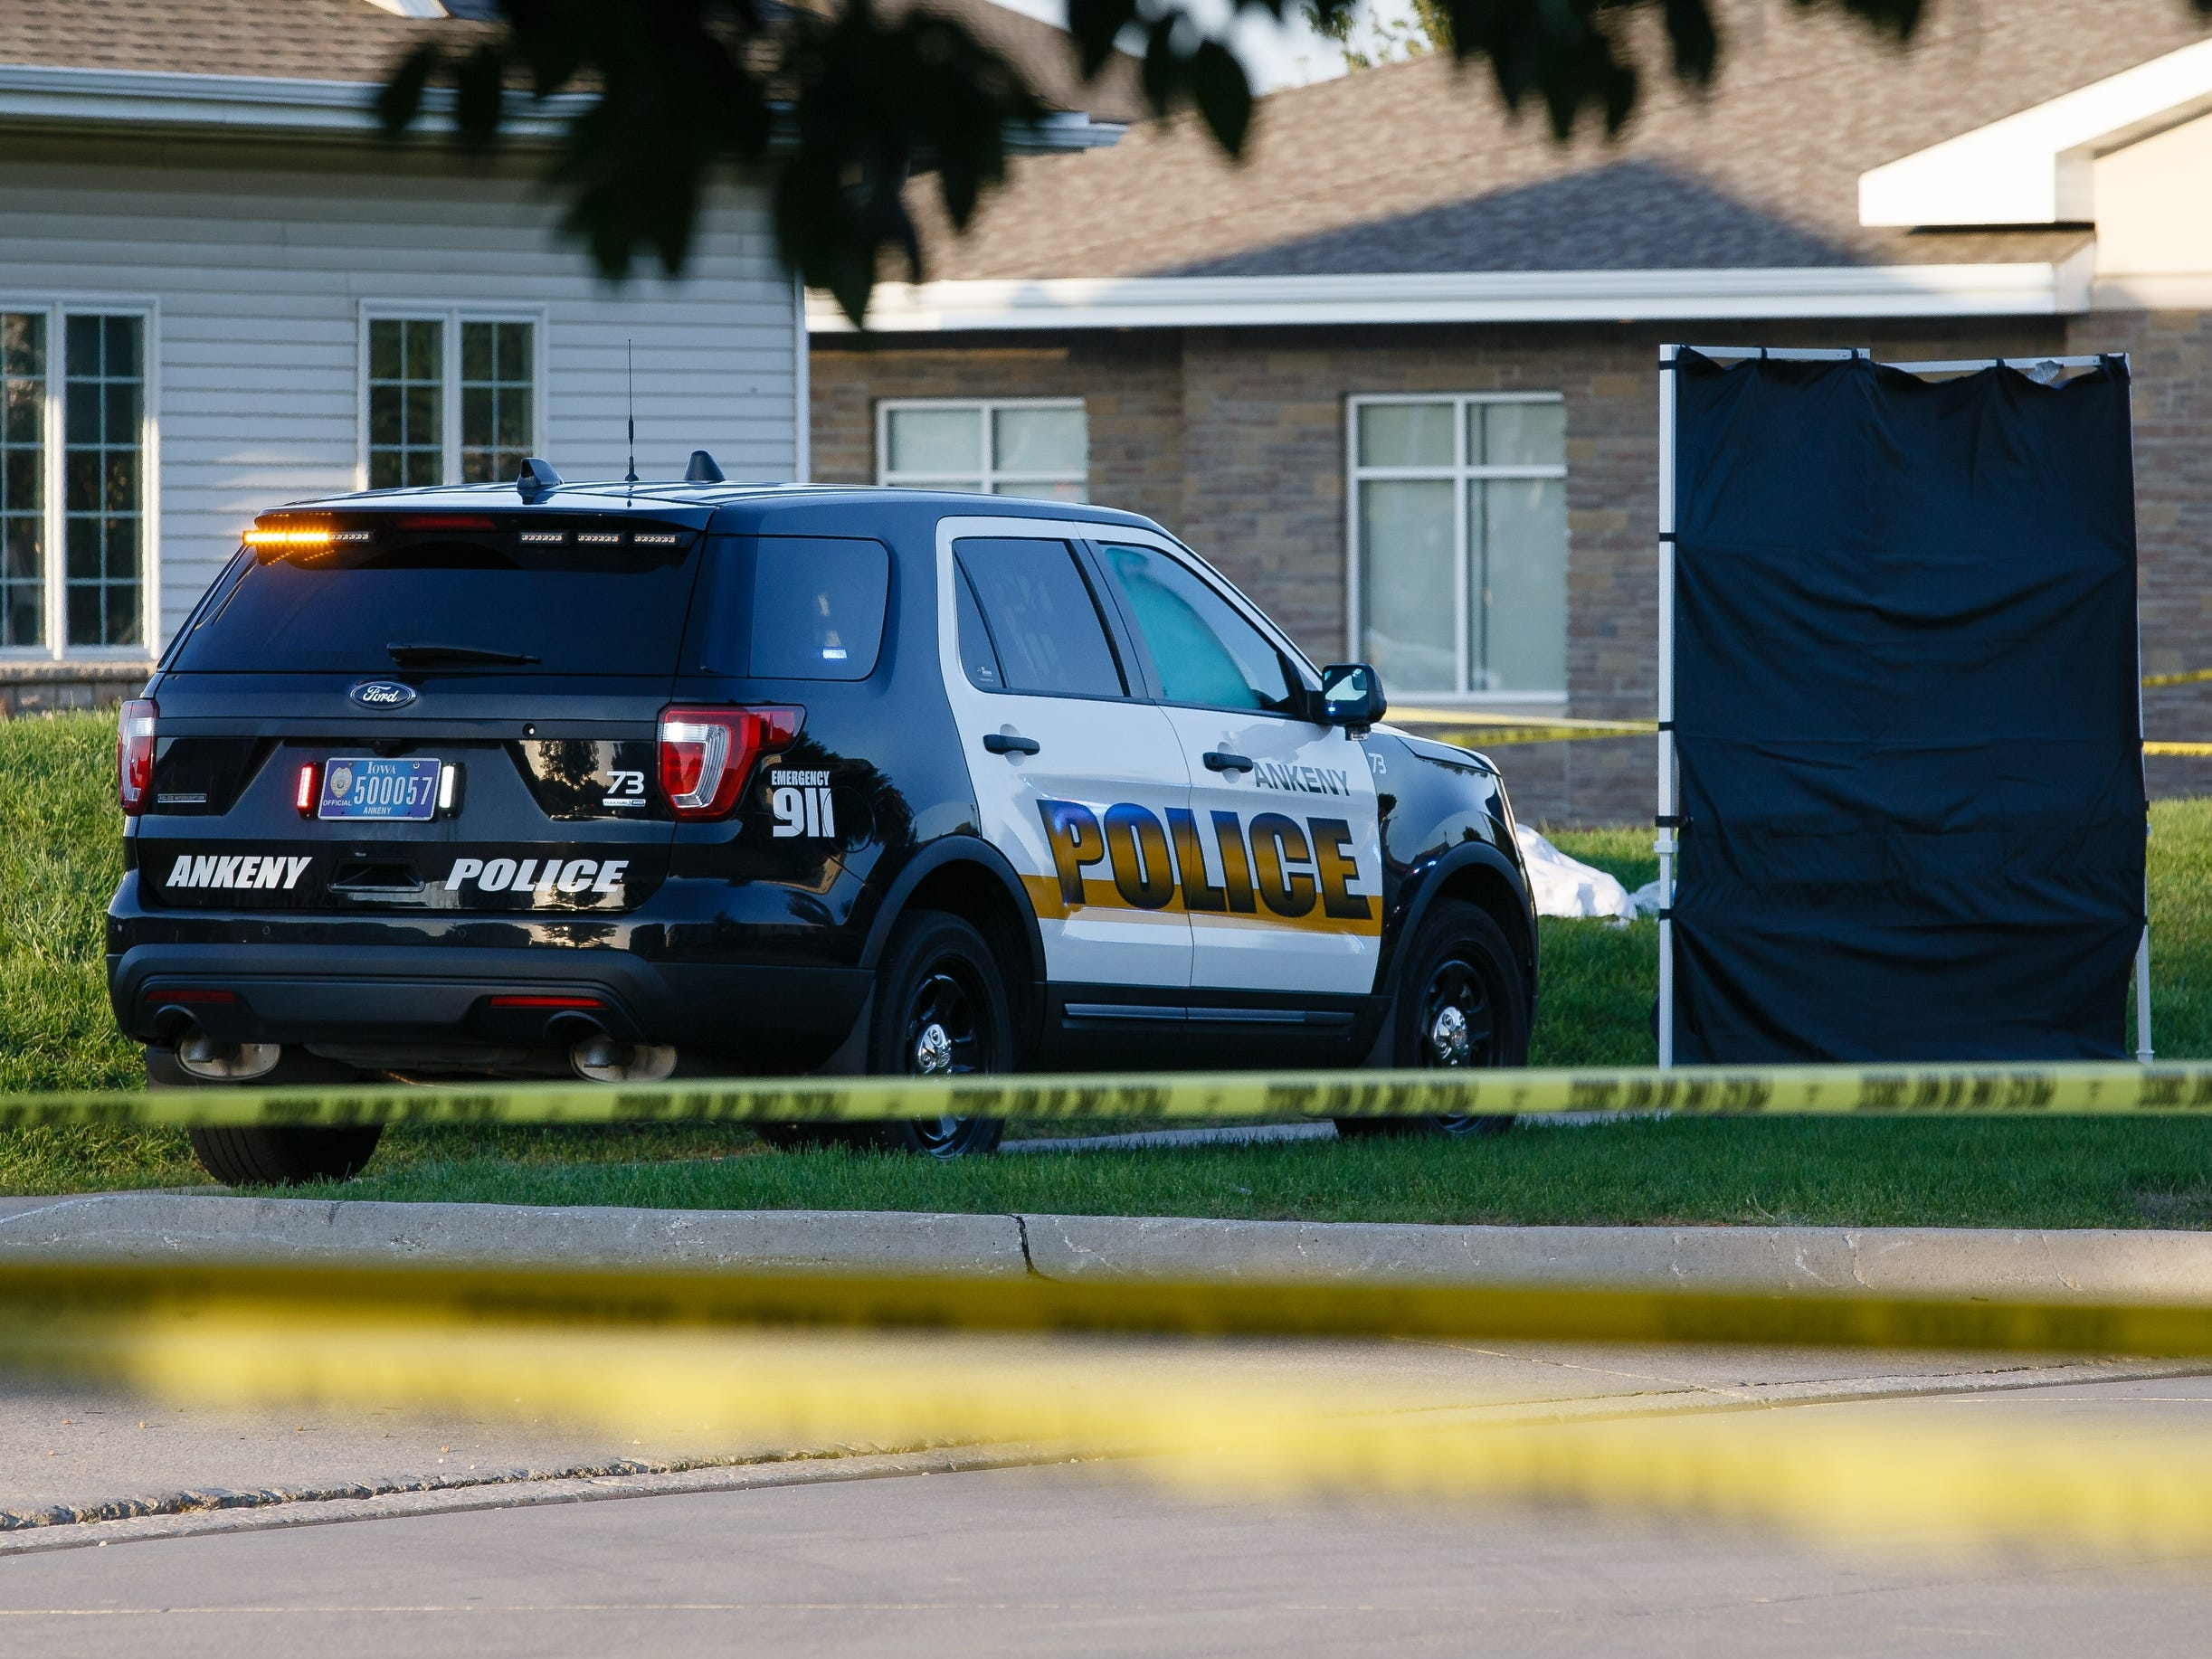 Ankeny Police investigate the scene of an officer involved shooting on Saturday, Sept. 15, 2018 in Ankeny.